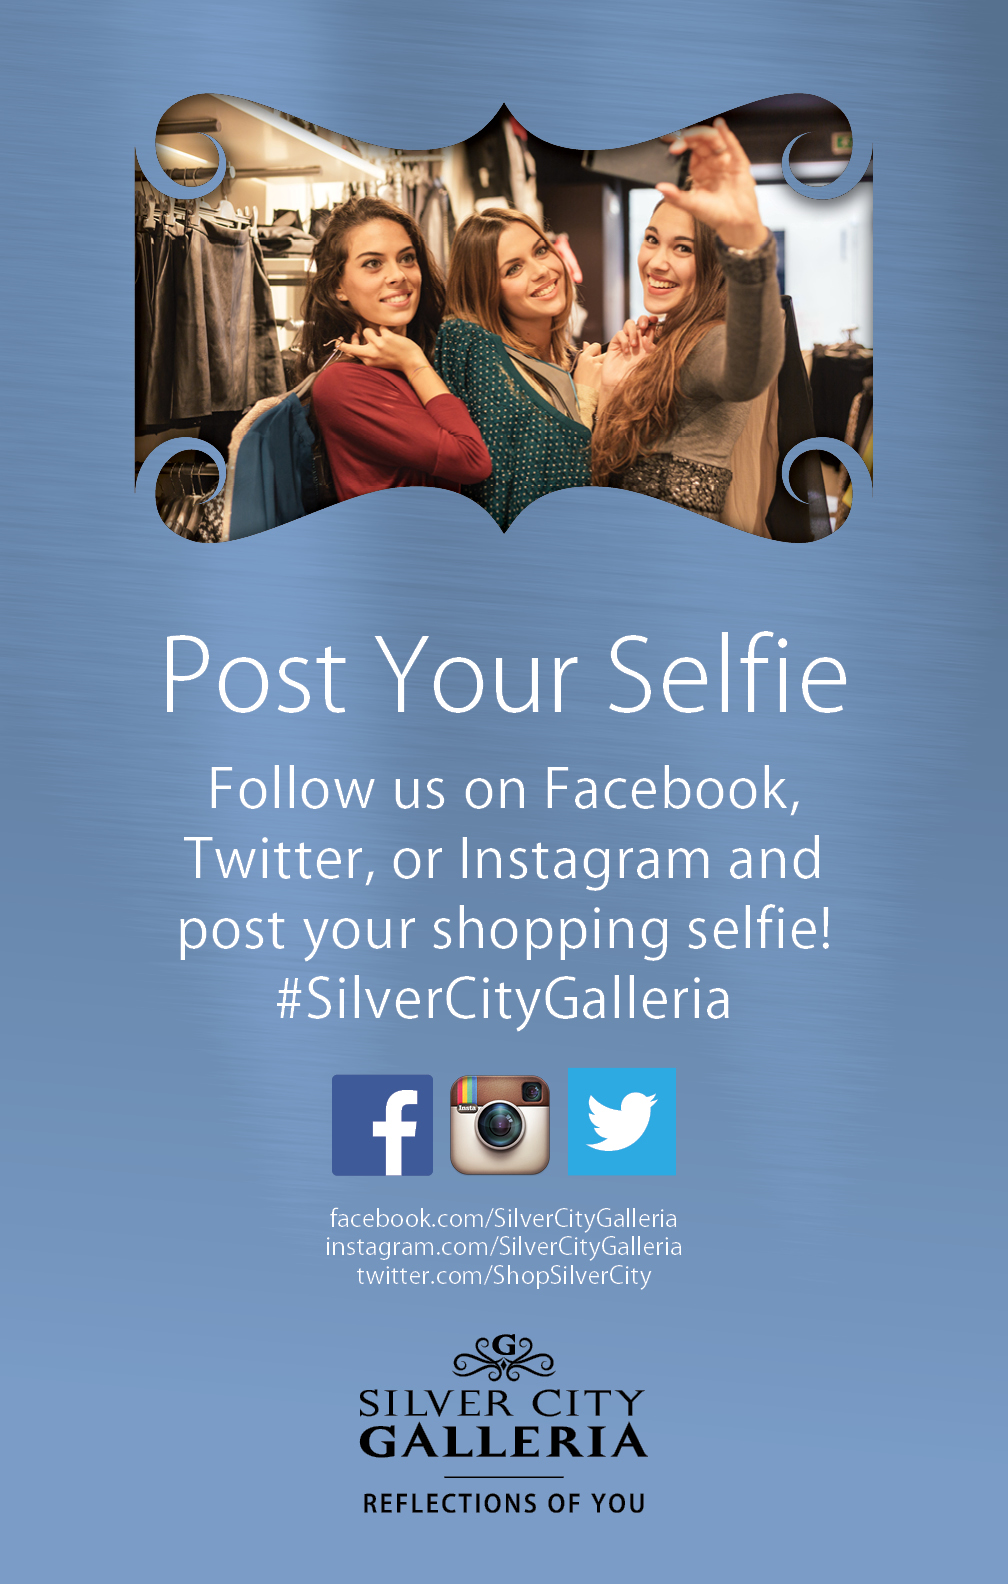 Social Media Ad Design for Silver City Galleria by Cybergraph®